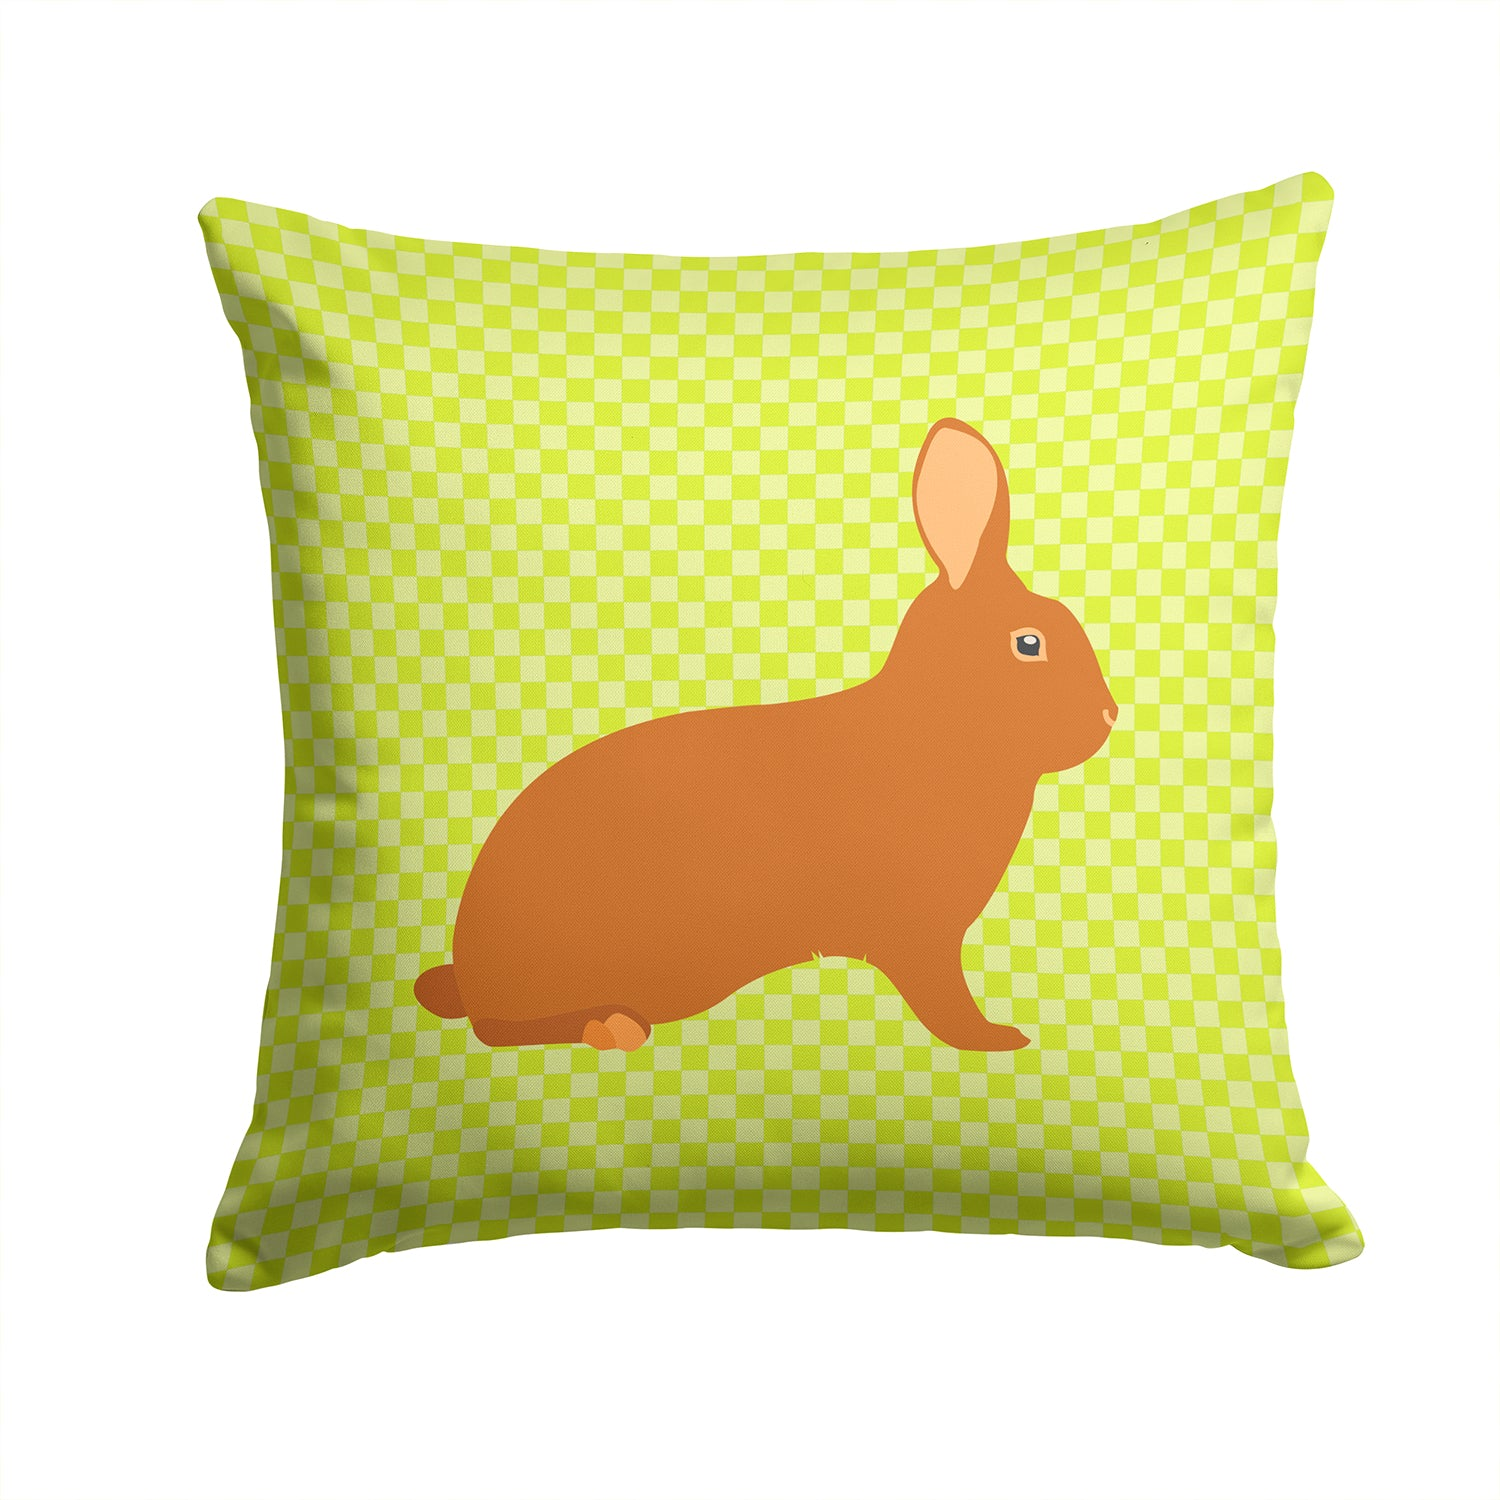 Rex Rabbit Green Fabric Decorative Pillow BB7795PW1414 by Caroline's Treasures